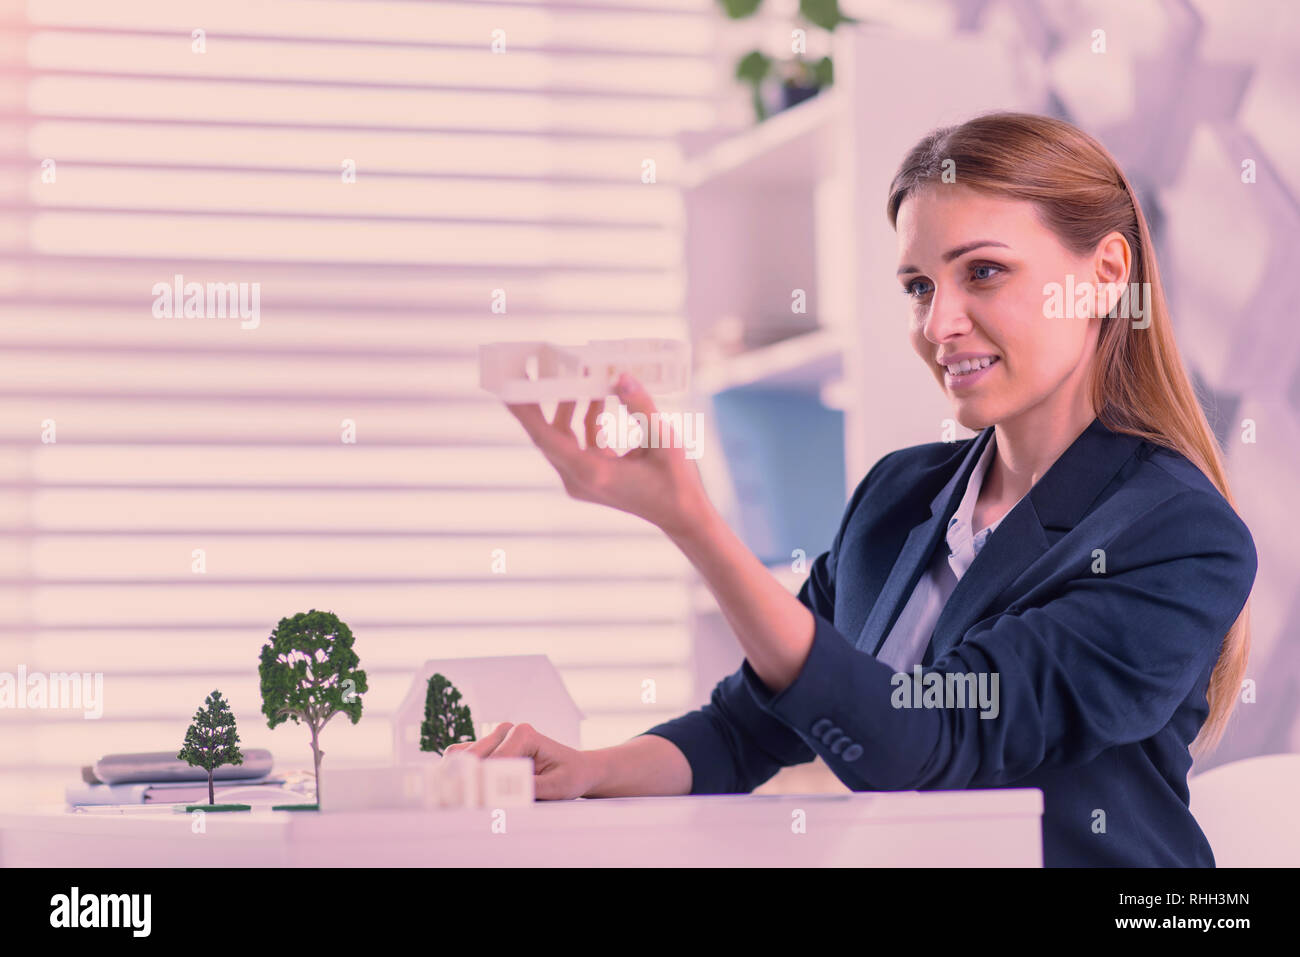 Attractive female architect elevating models at office - Stock Image